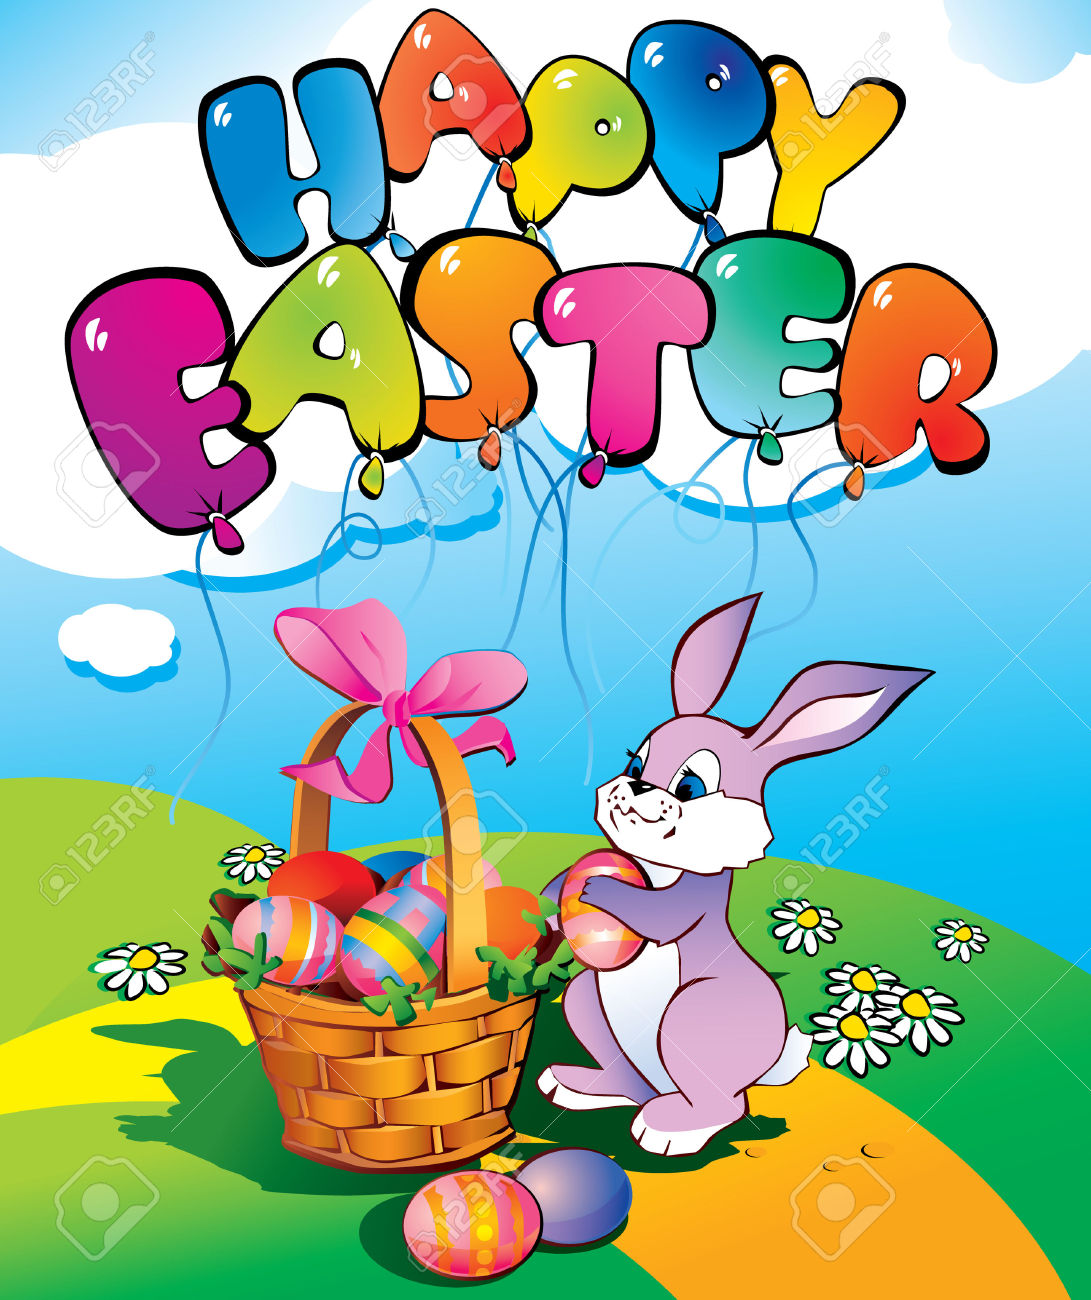 Happy easter basket clipart picture freeuse stock Easter Bunny With A Wicker Basket. Place For Your Text. Happy ... picture freeuse stock